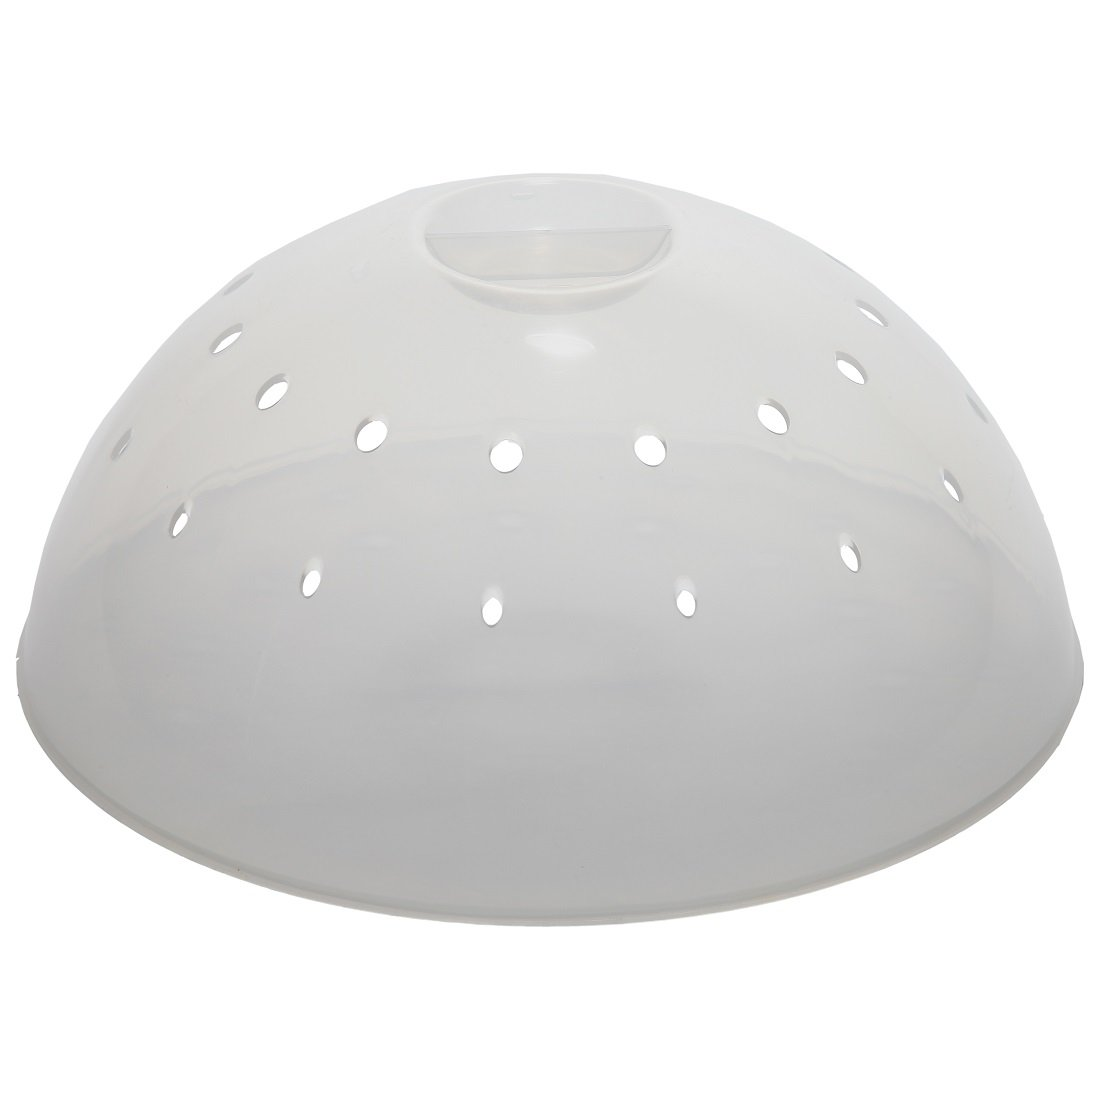 Home-X Domed Vented Microwave Cover